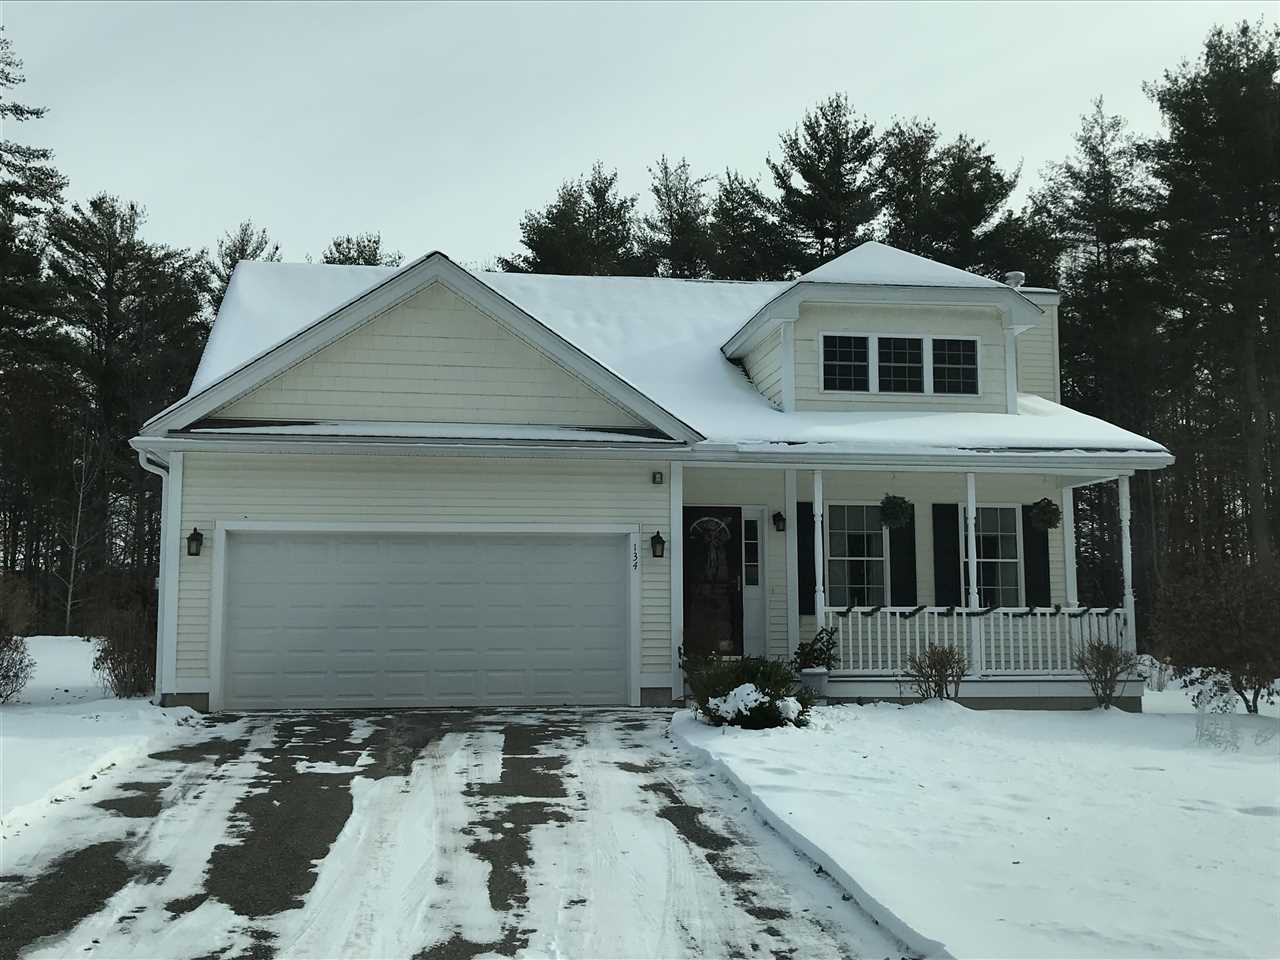 MLS 4671395: 7 Trails End, Laconia NH